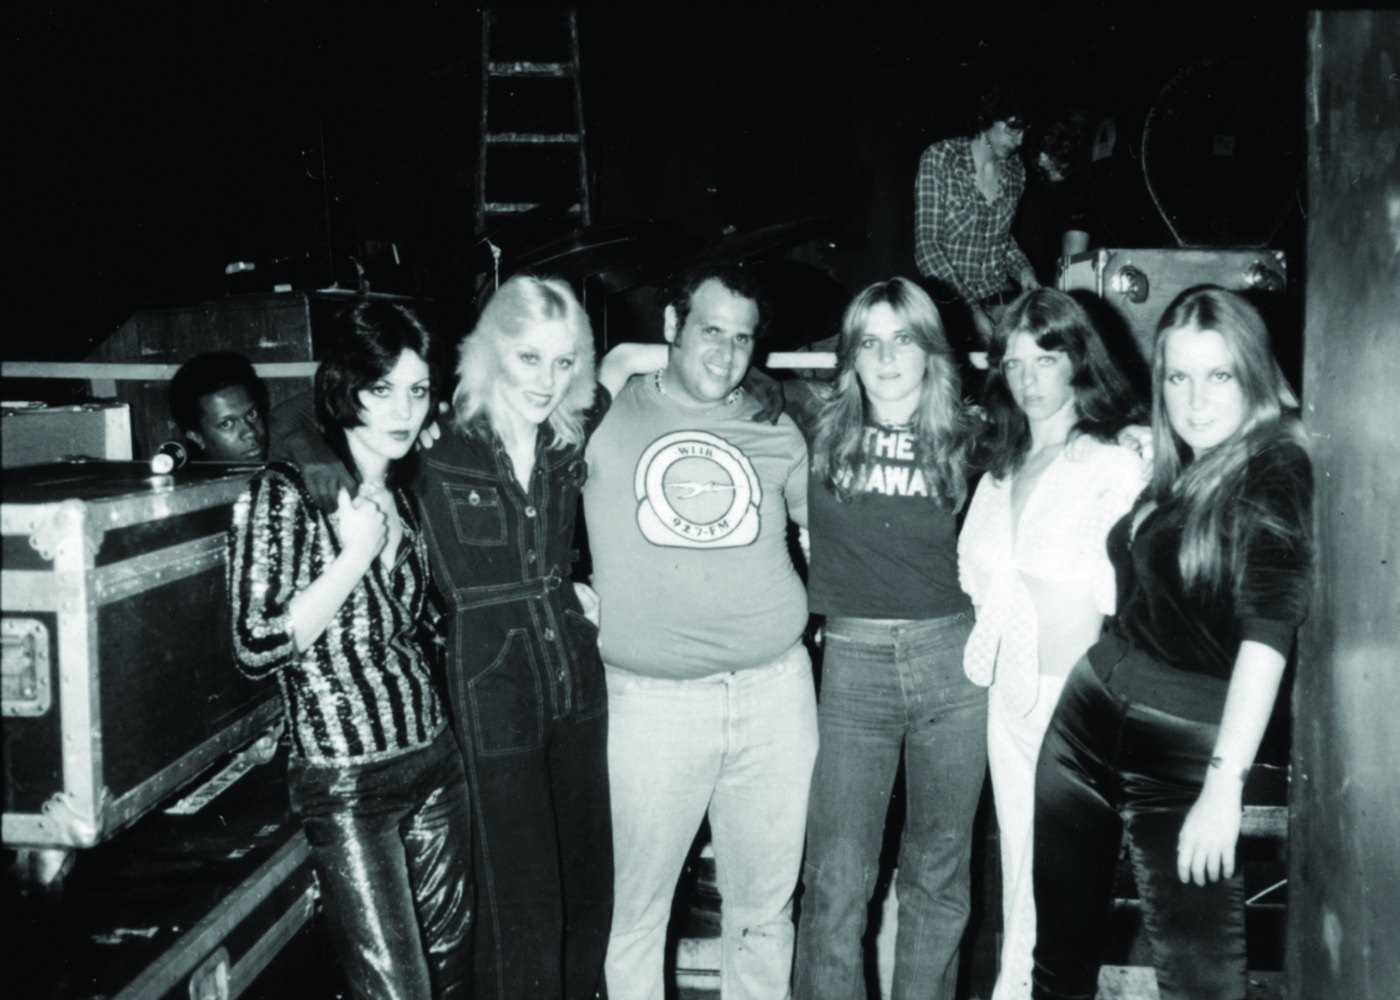 Michael 'Eppy' Epstein, center, with The Runaways. (Steve Rosenfeld)